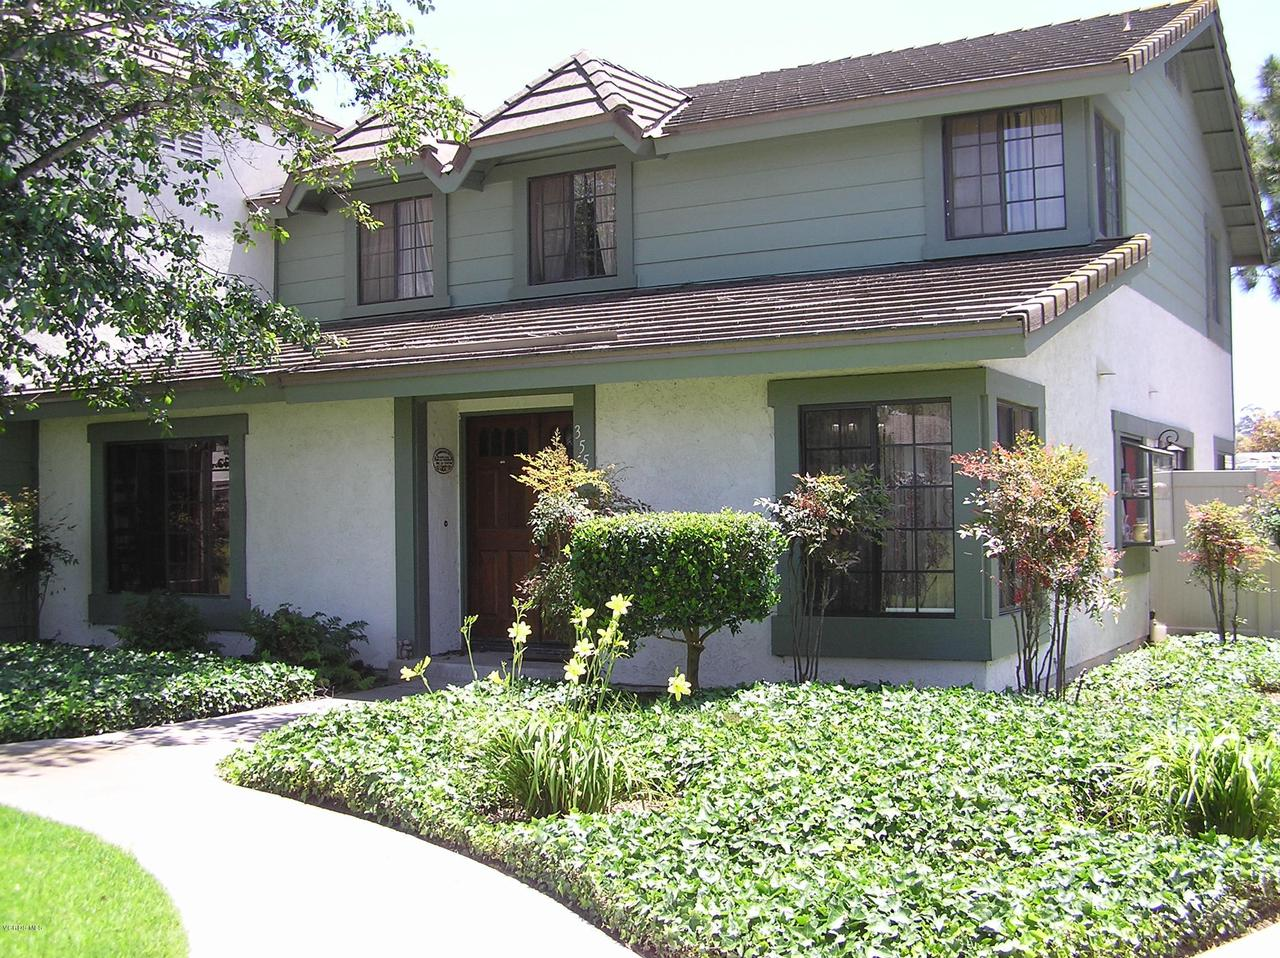 Photo of 3556 OLDS ROAD, Oxnard, CA 93033